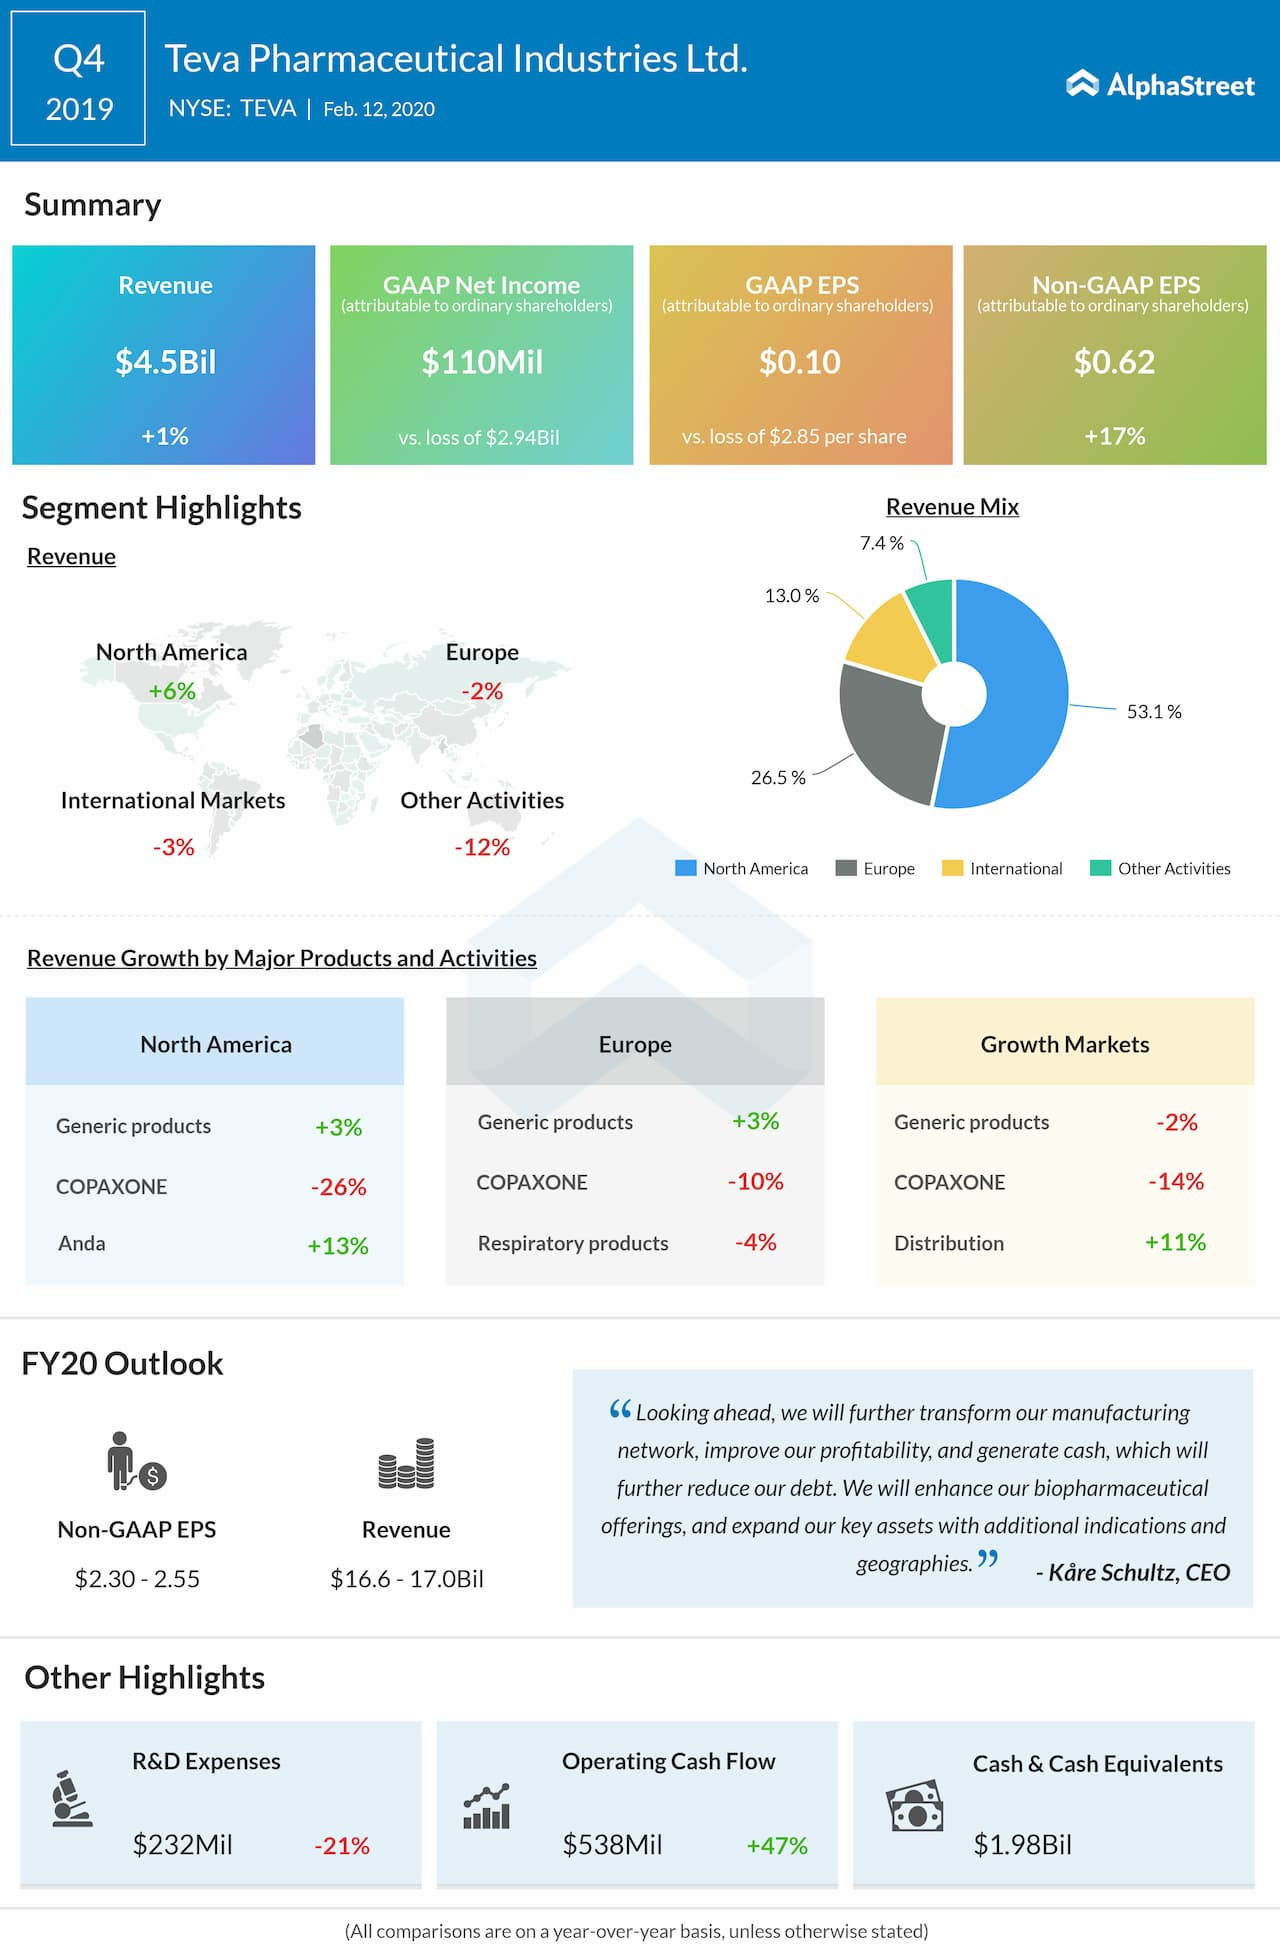 Teva Pharmaceutical (TEVA) Q4 2019 earnings review